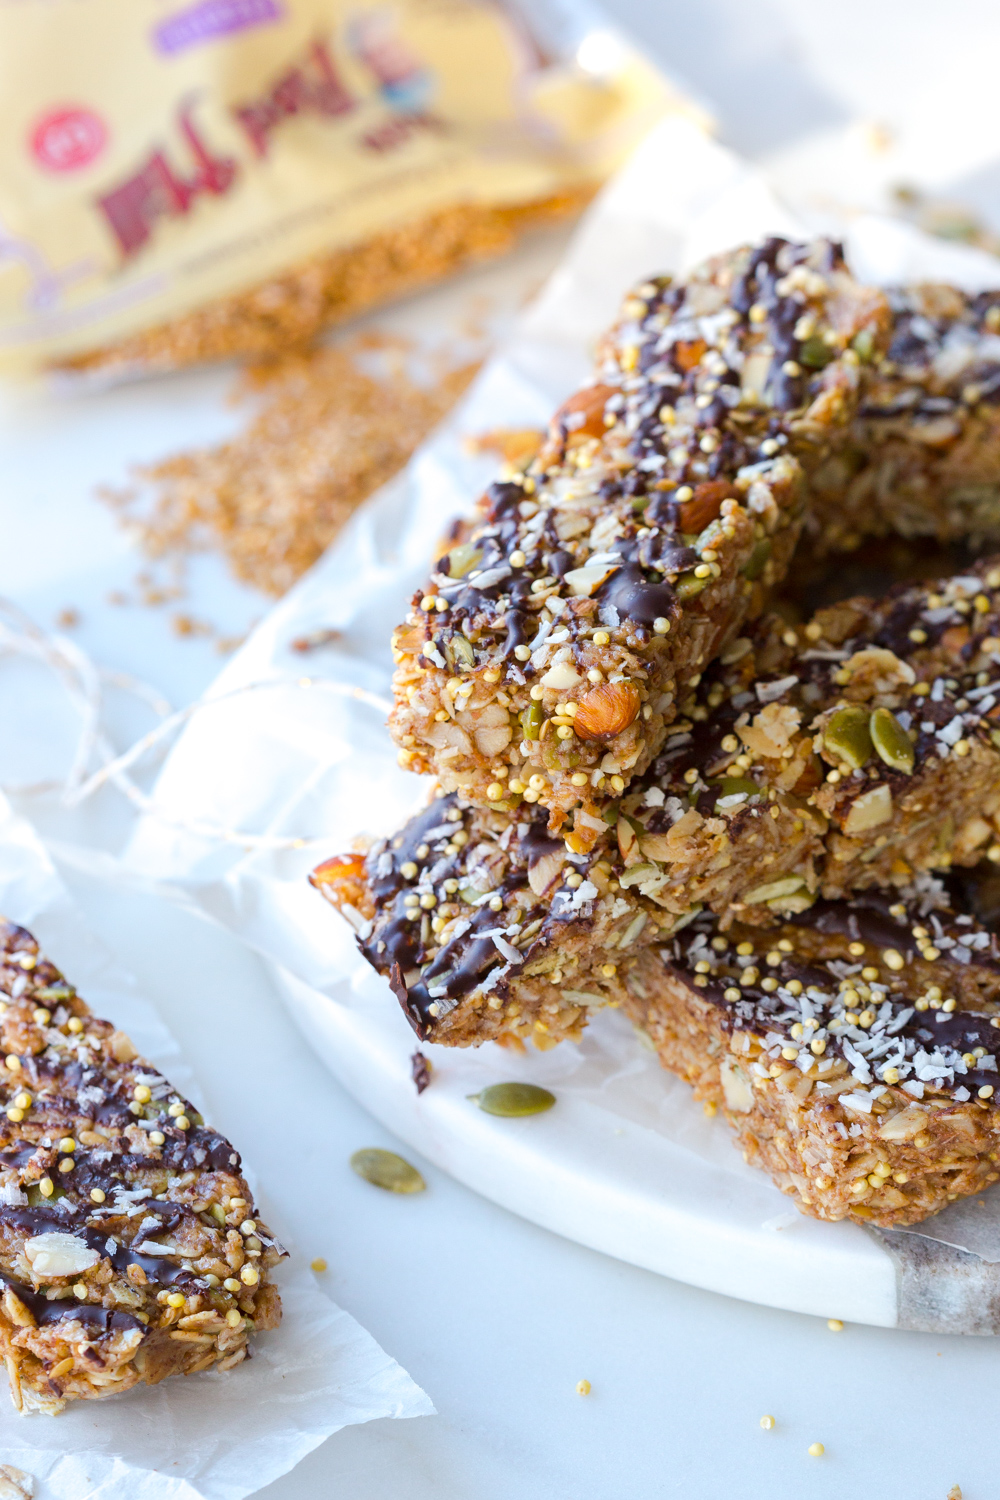 Seedy Almond Oat Bars from Baking The Goods